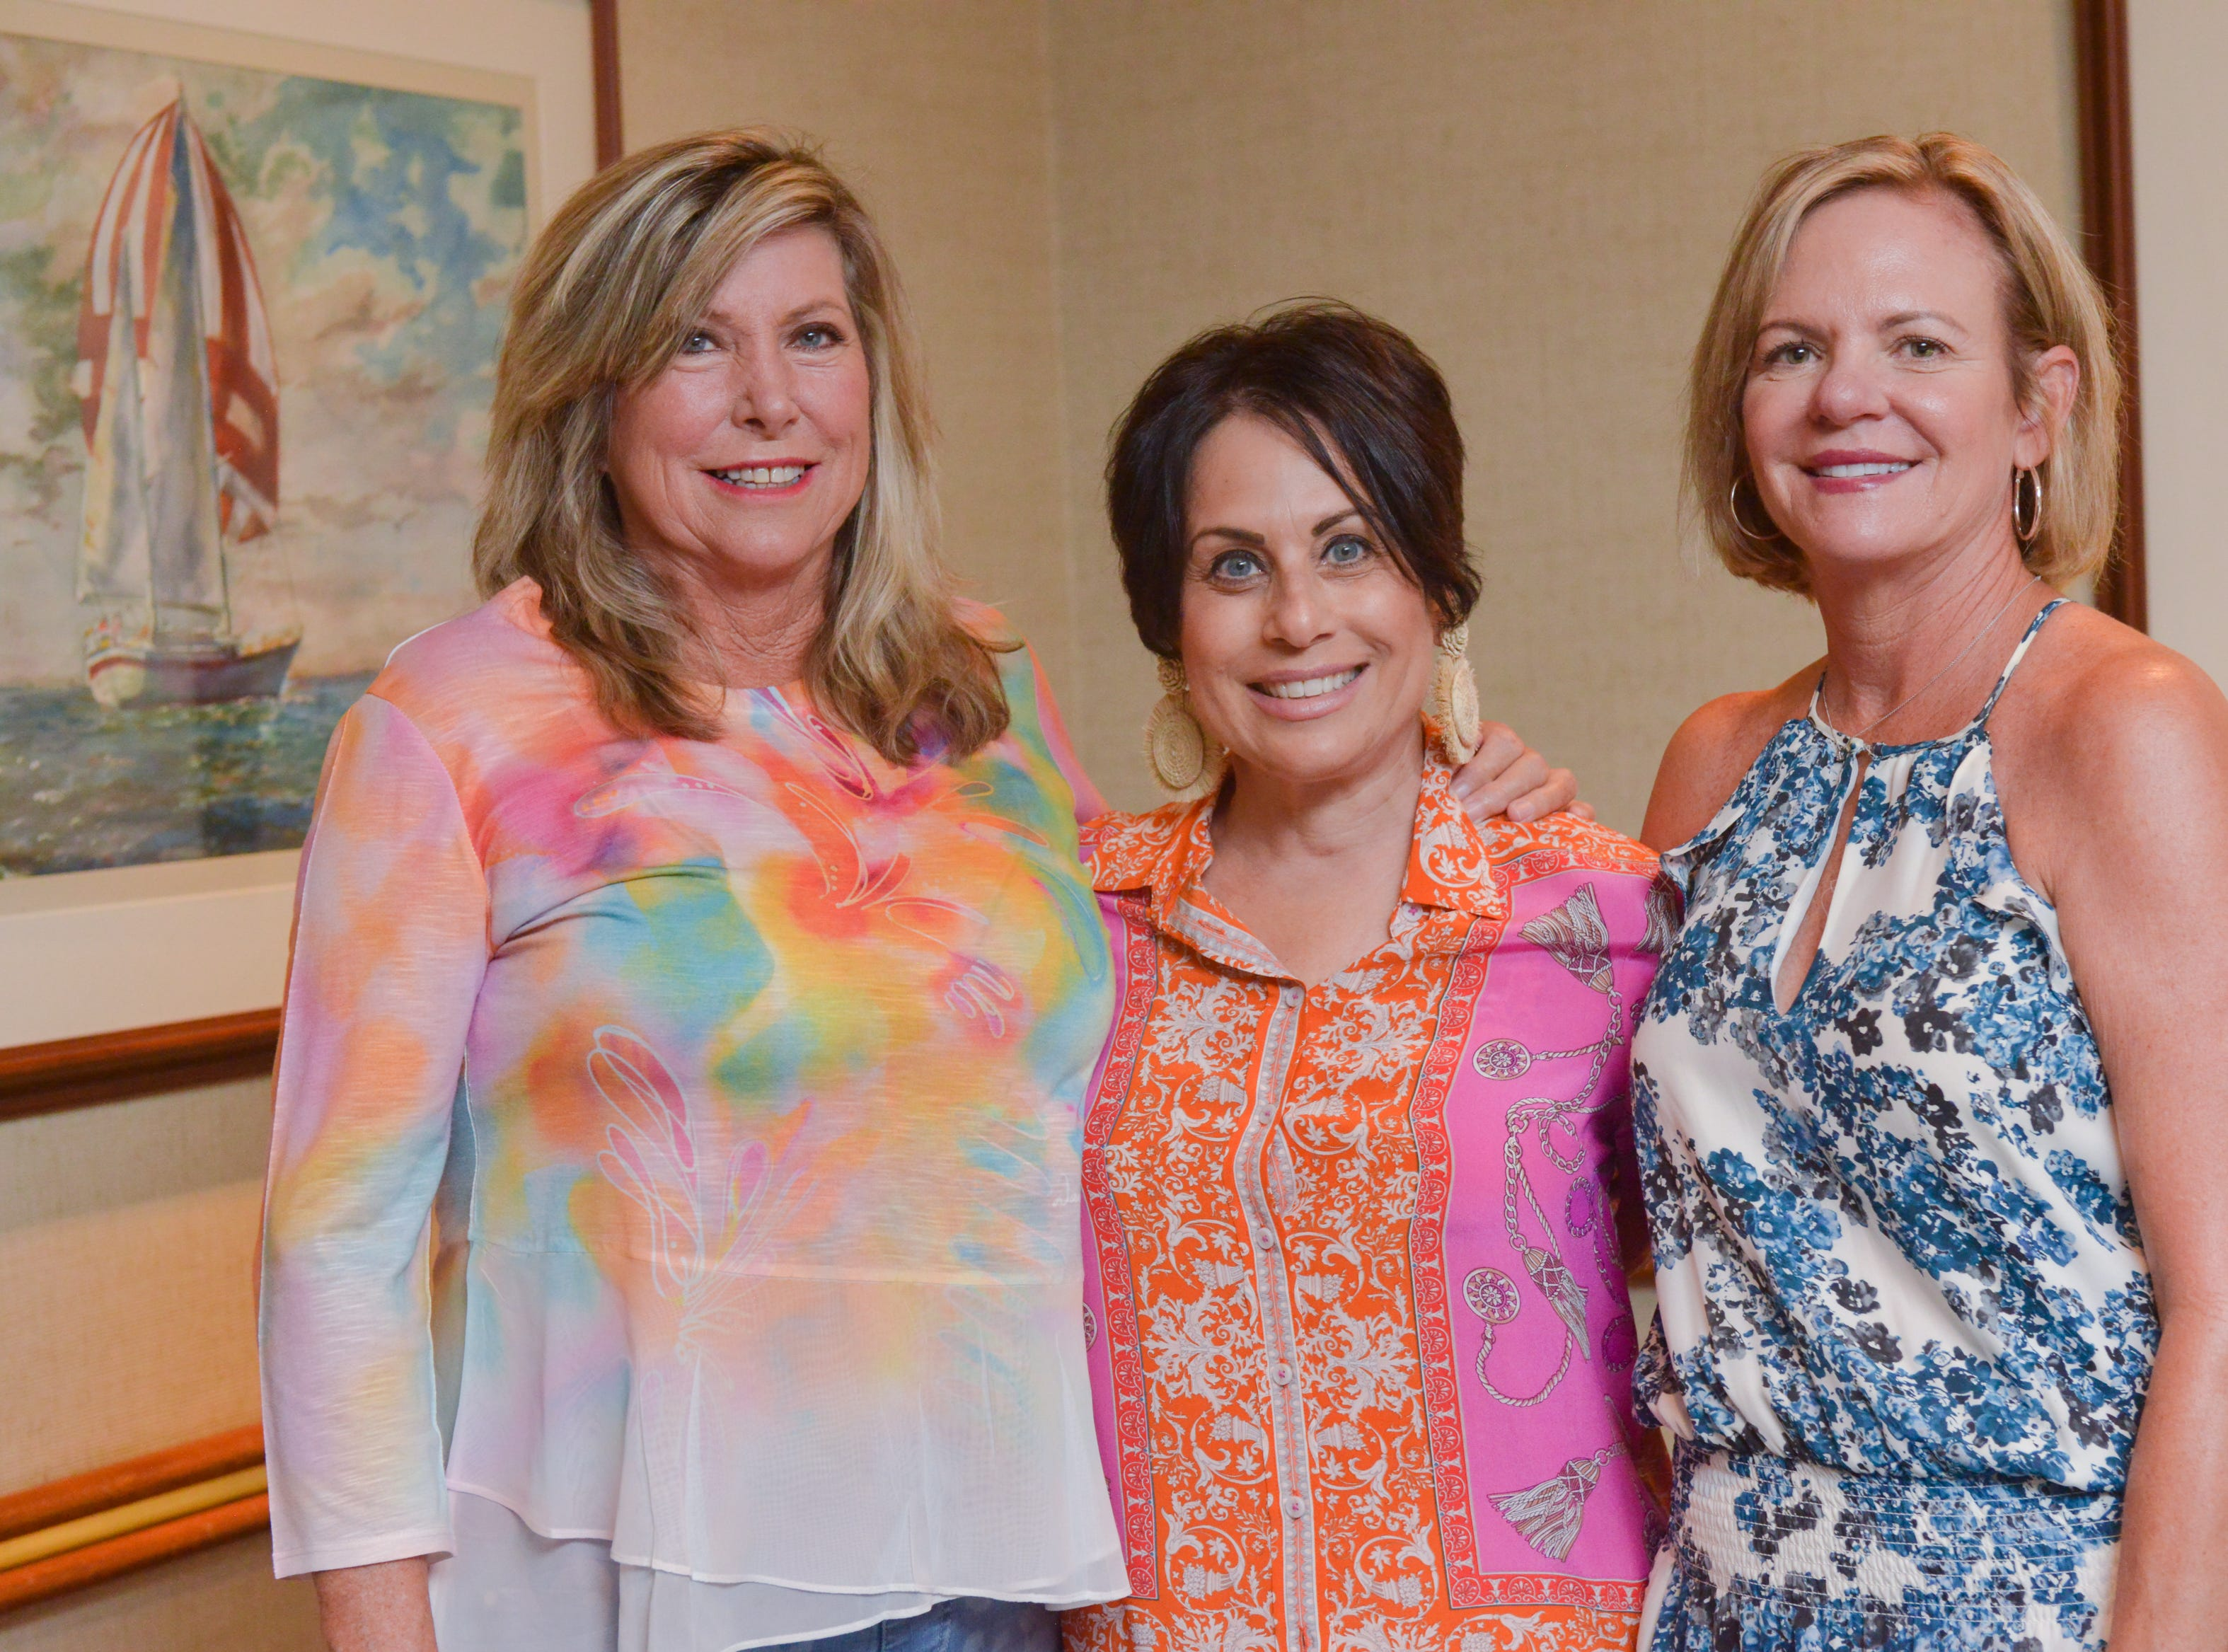 Karen Nierenberg, Rita Moreno and Kelly Allison at Friends of Sally's House luncheon at the Eau Gallie Yacht Club.